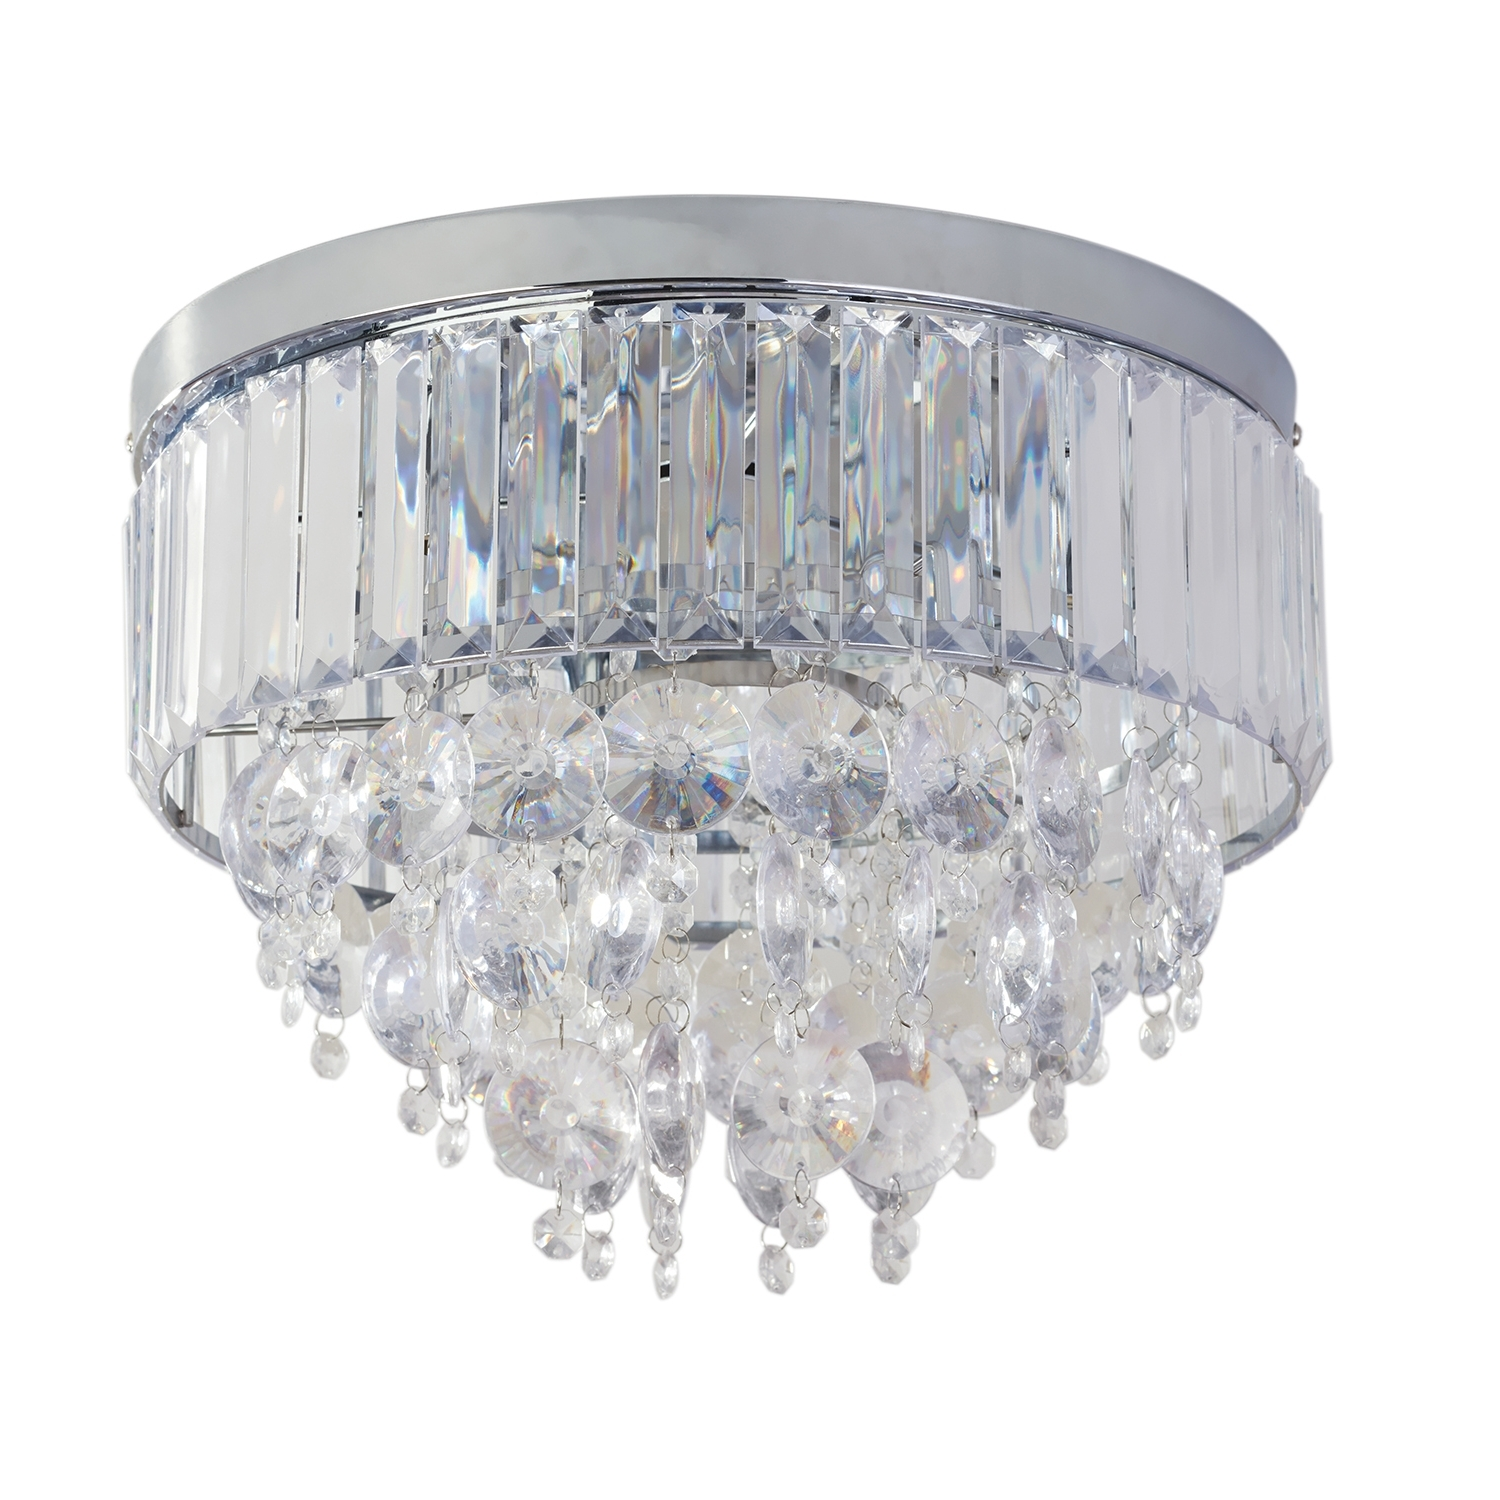 Flush Fitting Chandelier Throughout Well Liked Aviv Three Light Flush Fitting (View 9 of 20)